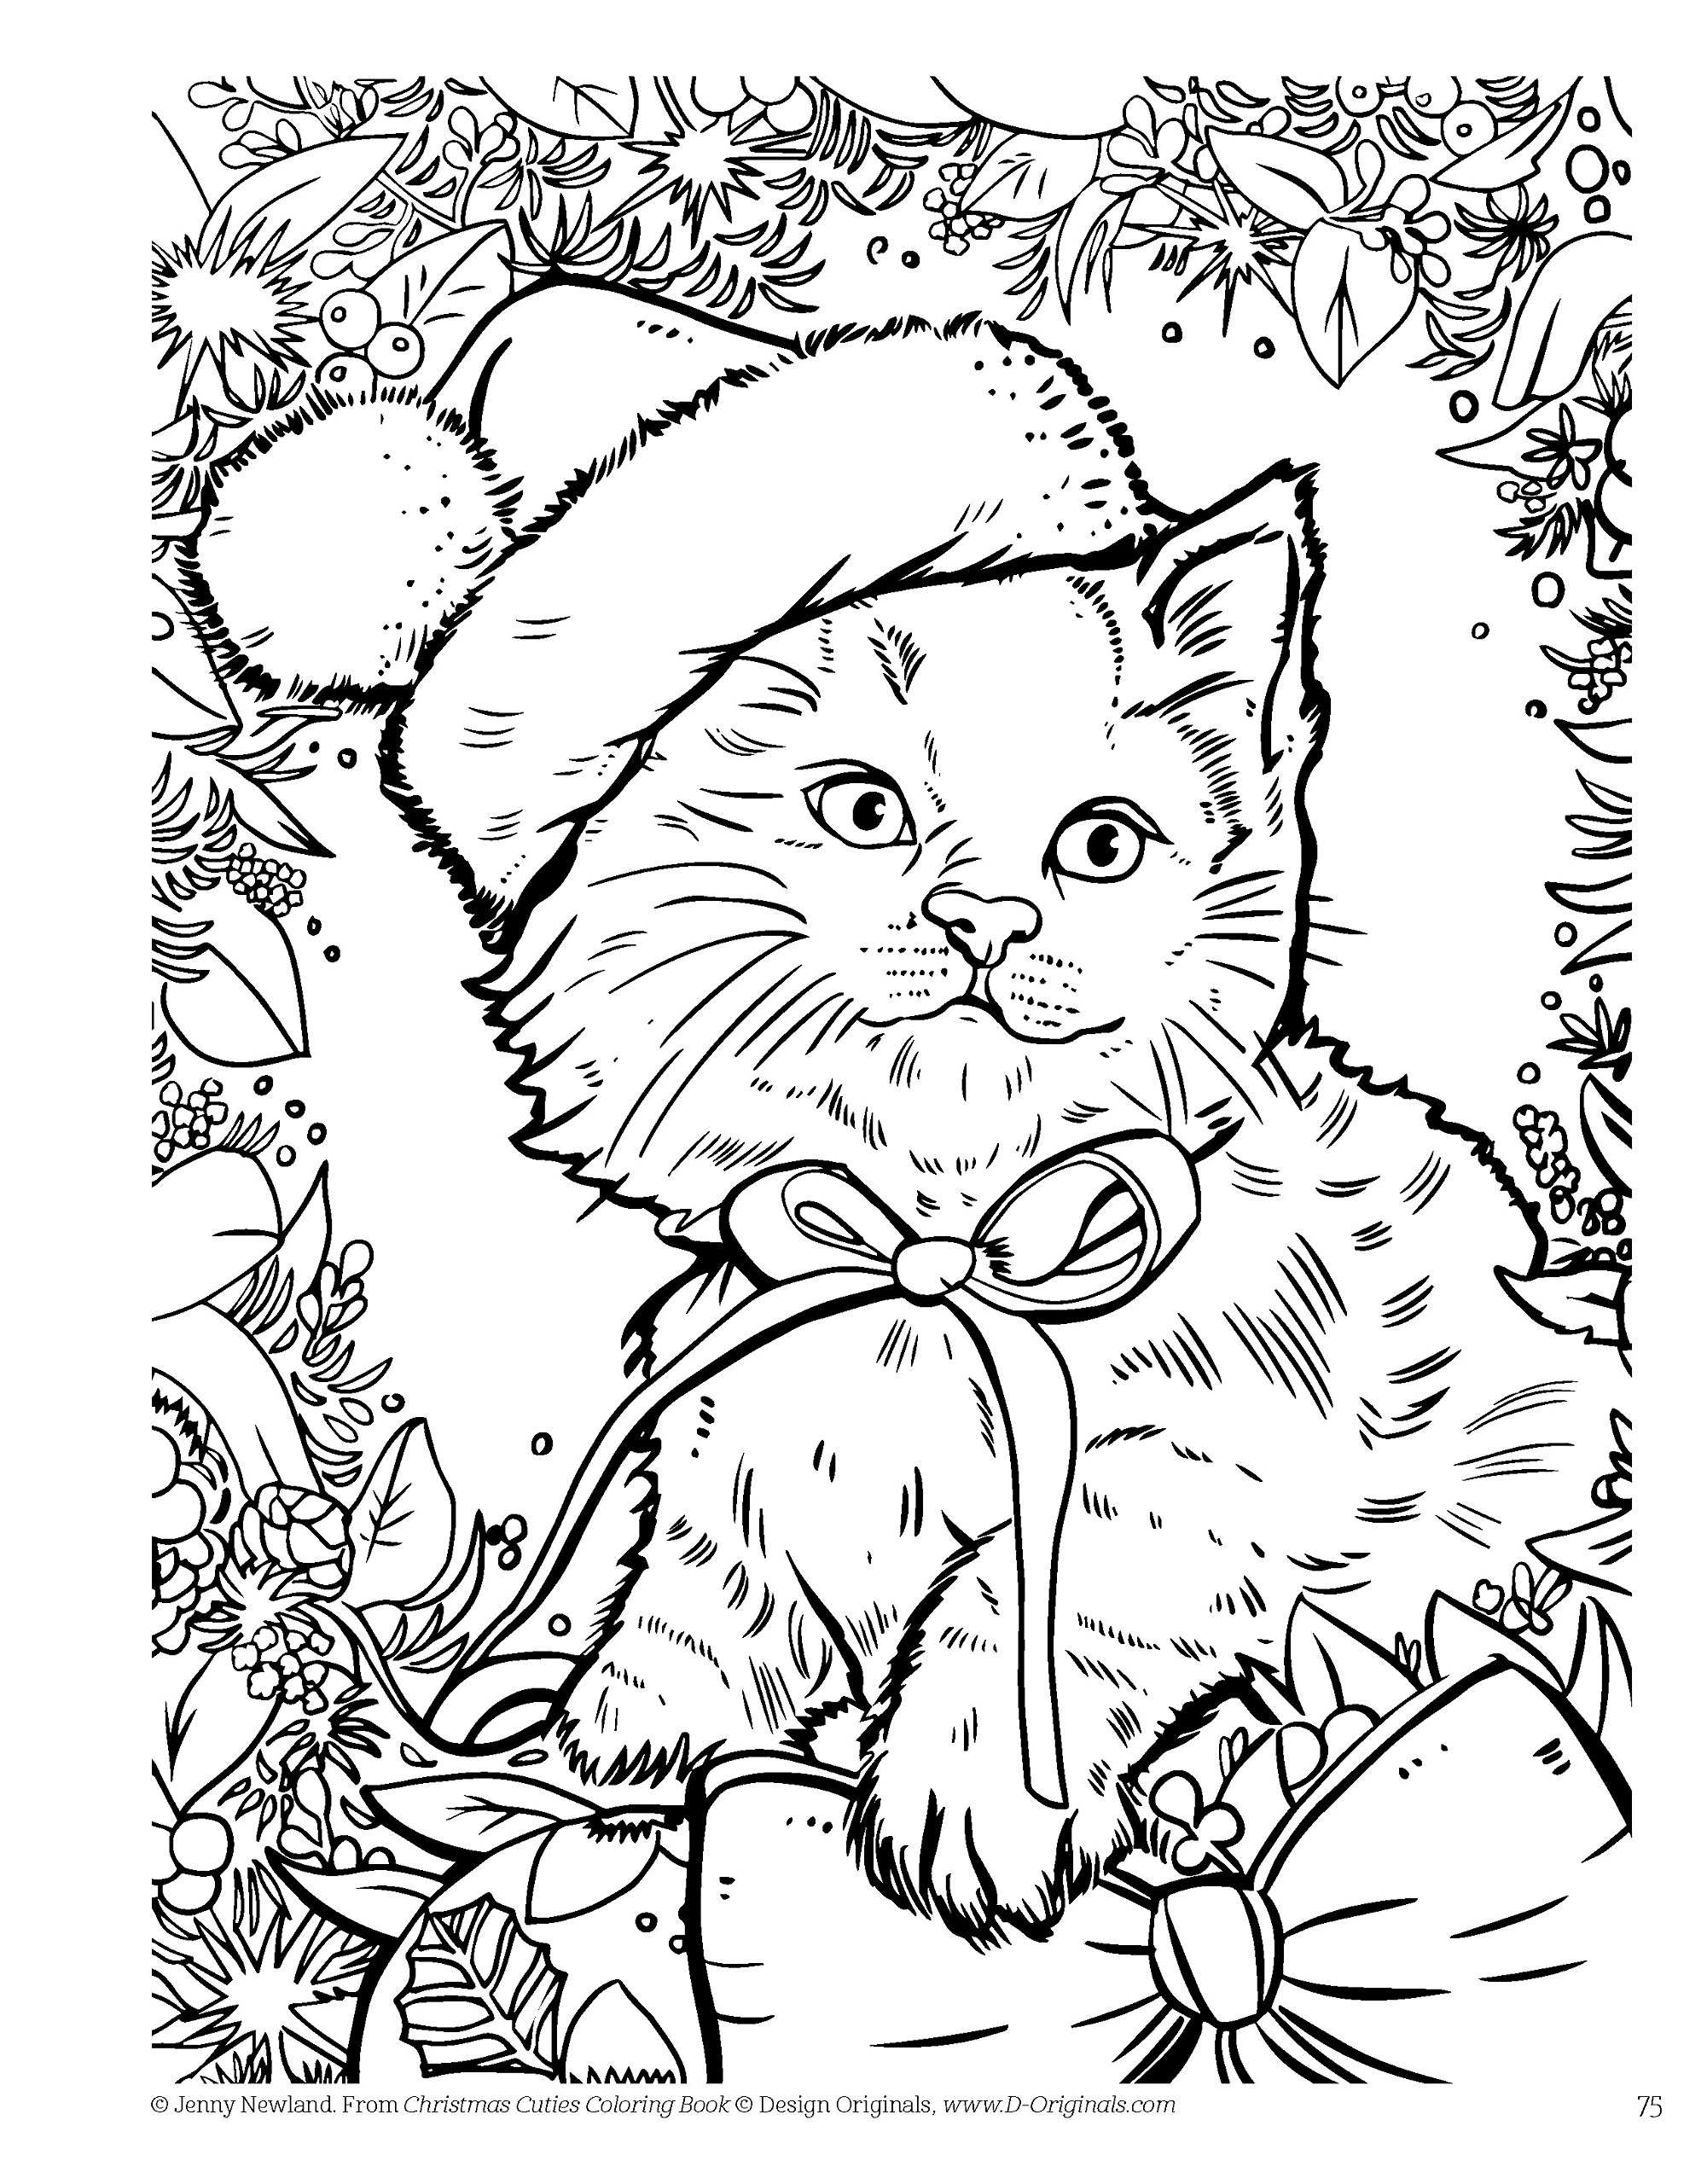 Amazon Christmas Cuties Coloring Book Design Originals Dozens Of Puppies Kittens In Festive Holiday Settings One Side Only Designs On Extra Thick